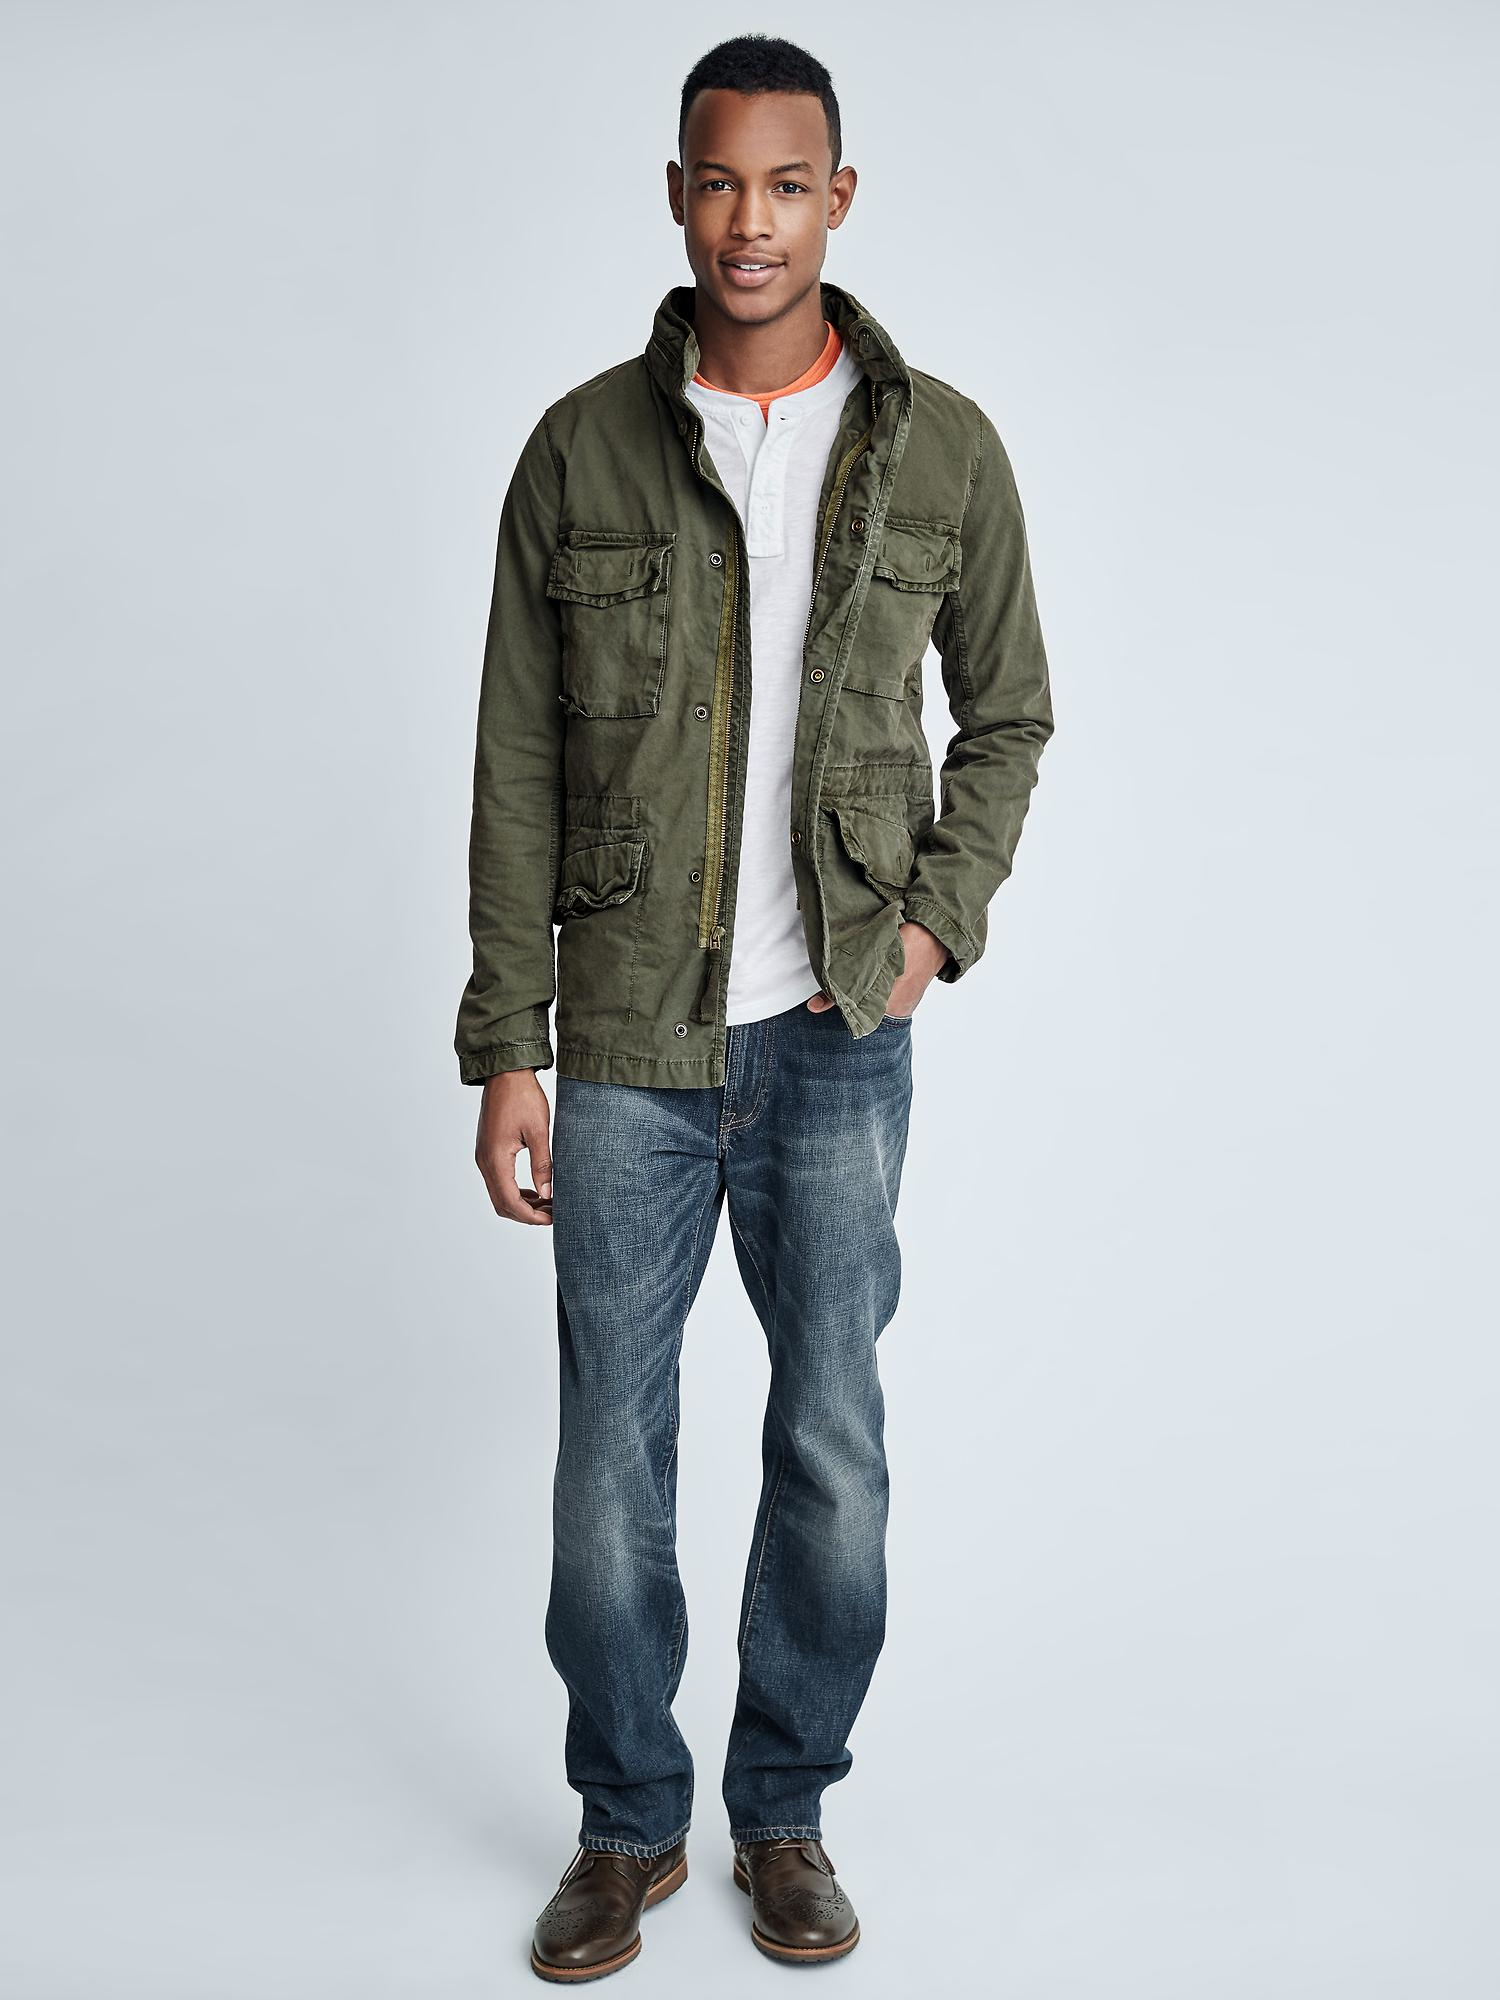 Fatigues Army Navy can outfit you in our full collection of Vintage Jackets, military inspired and outdoor approved. Here you can find that vintage washed out look and feel Army Jacket that you have been in .